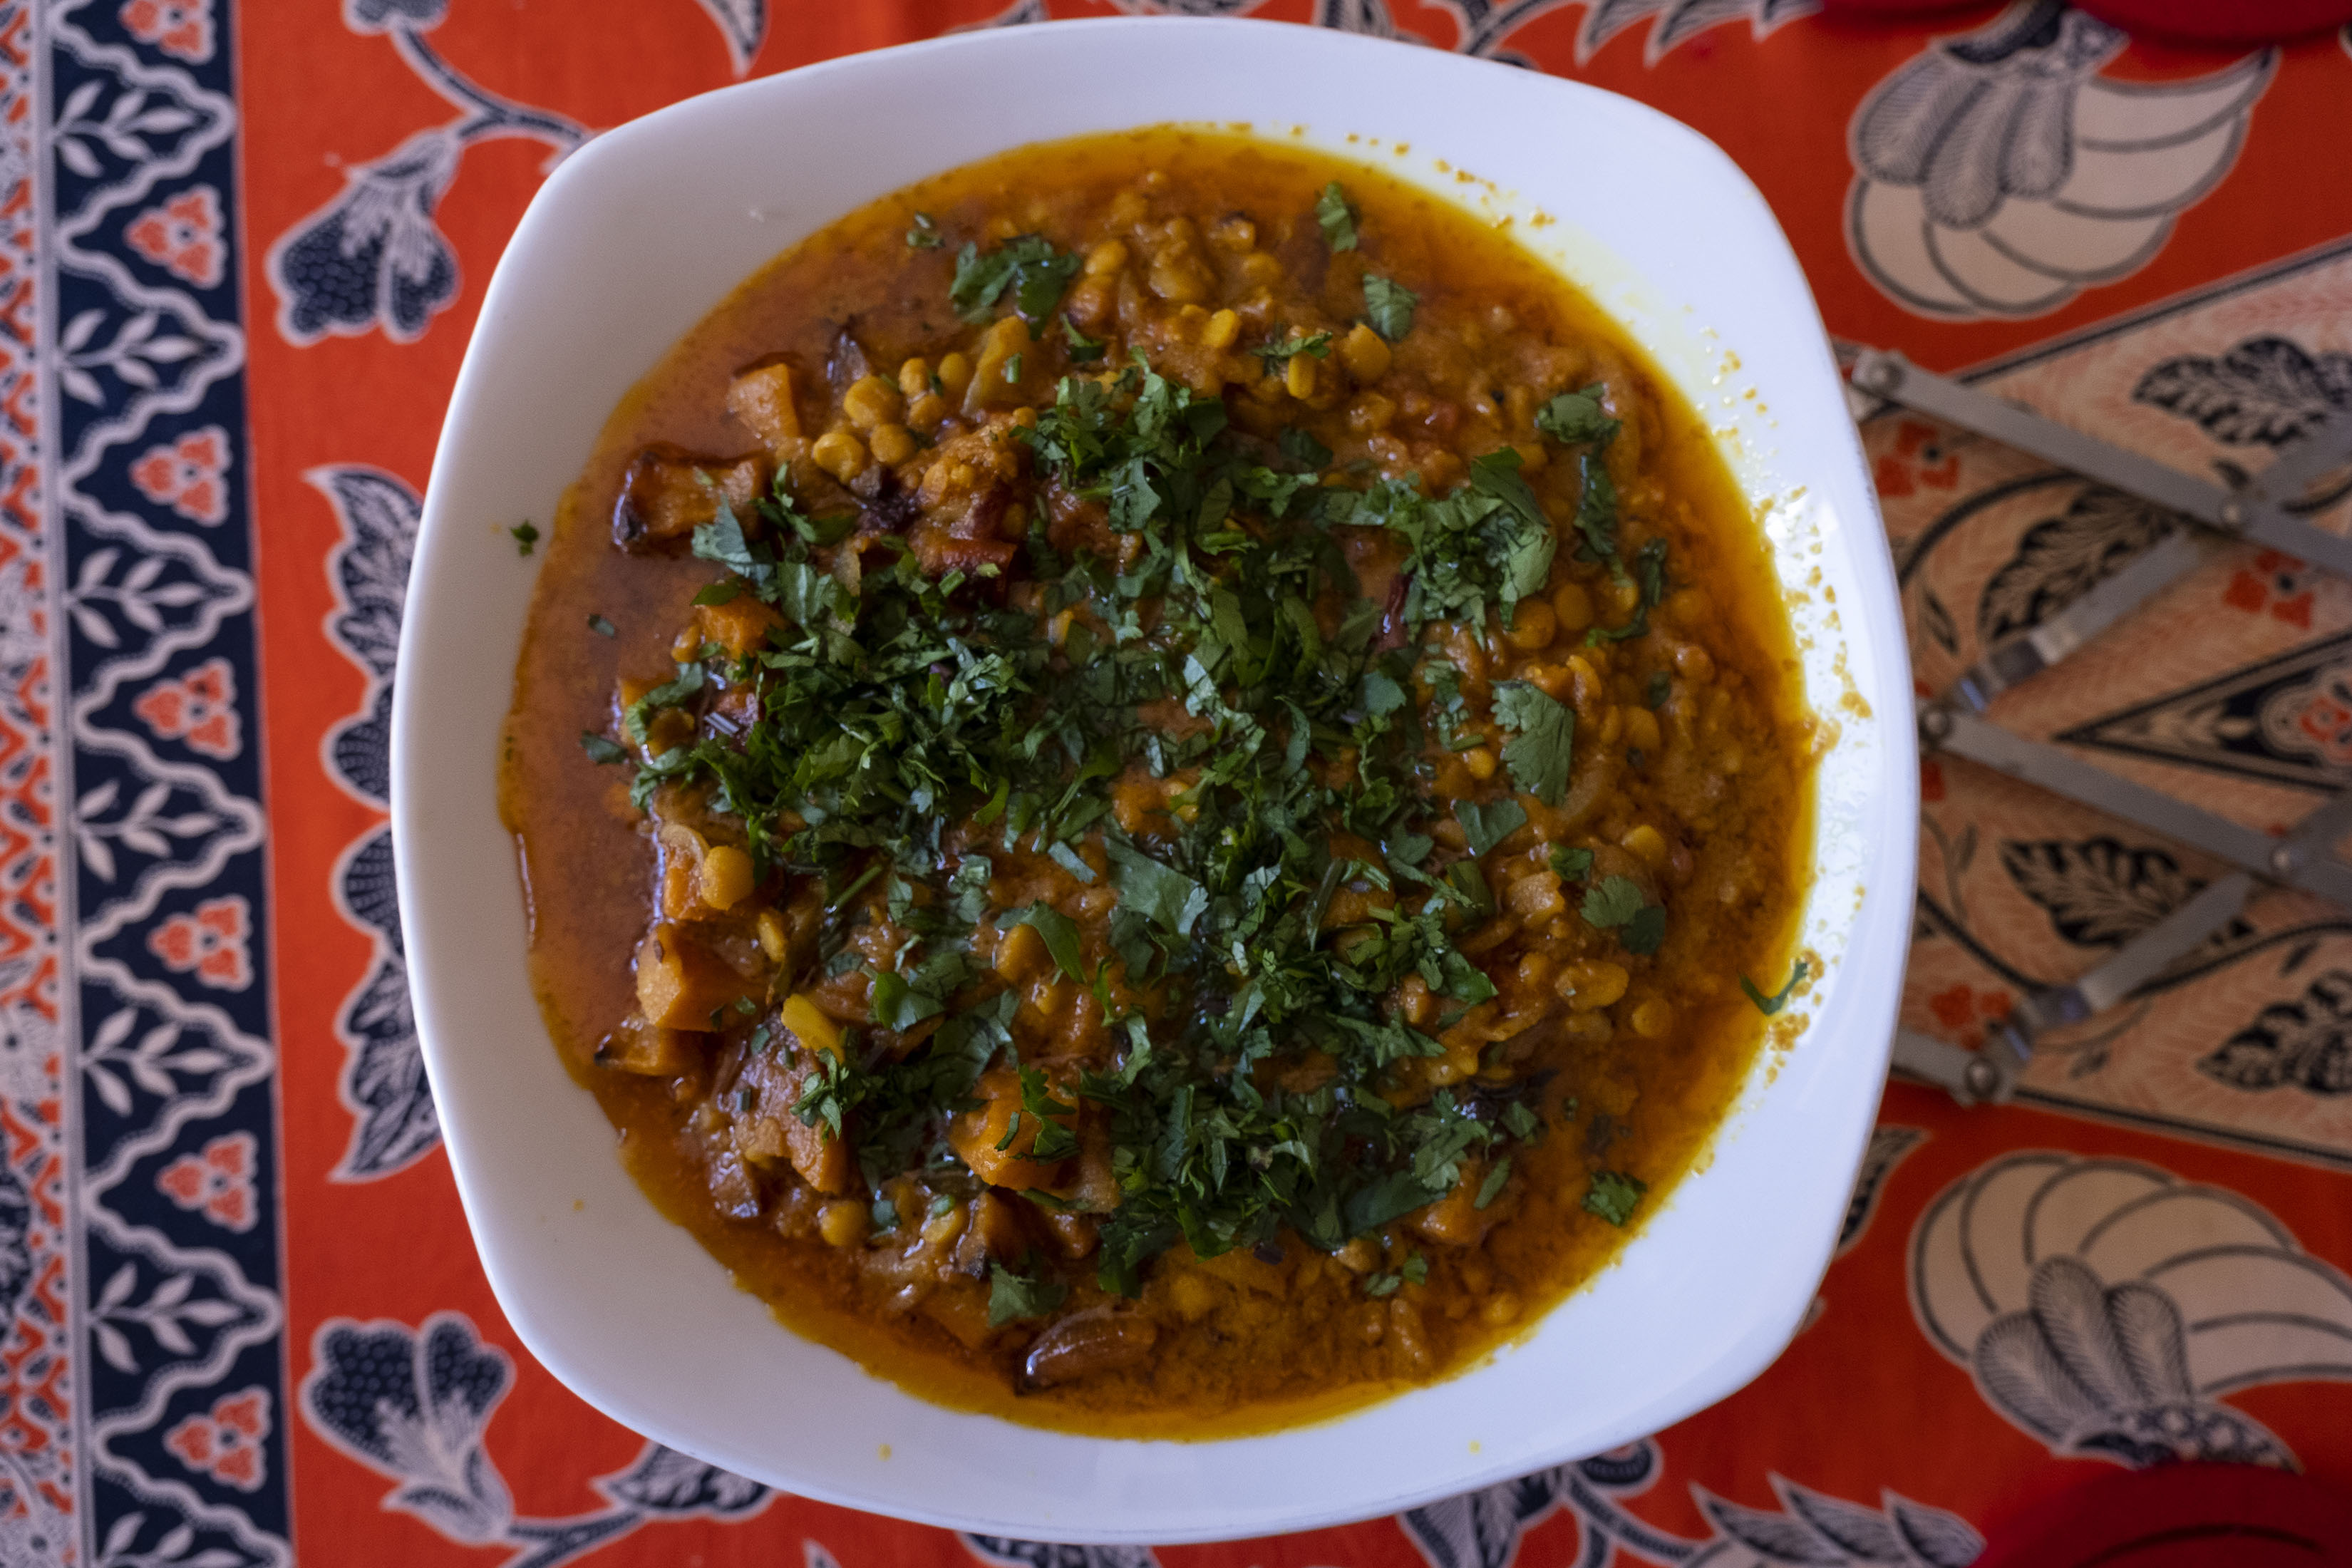 3 September 2019: Lentil curry made with 3 different lentils.